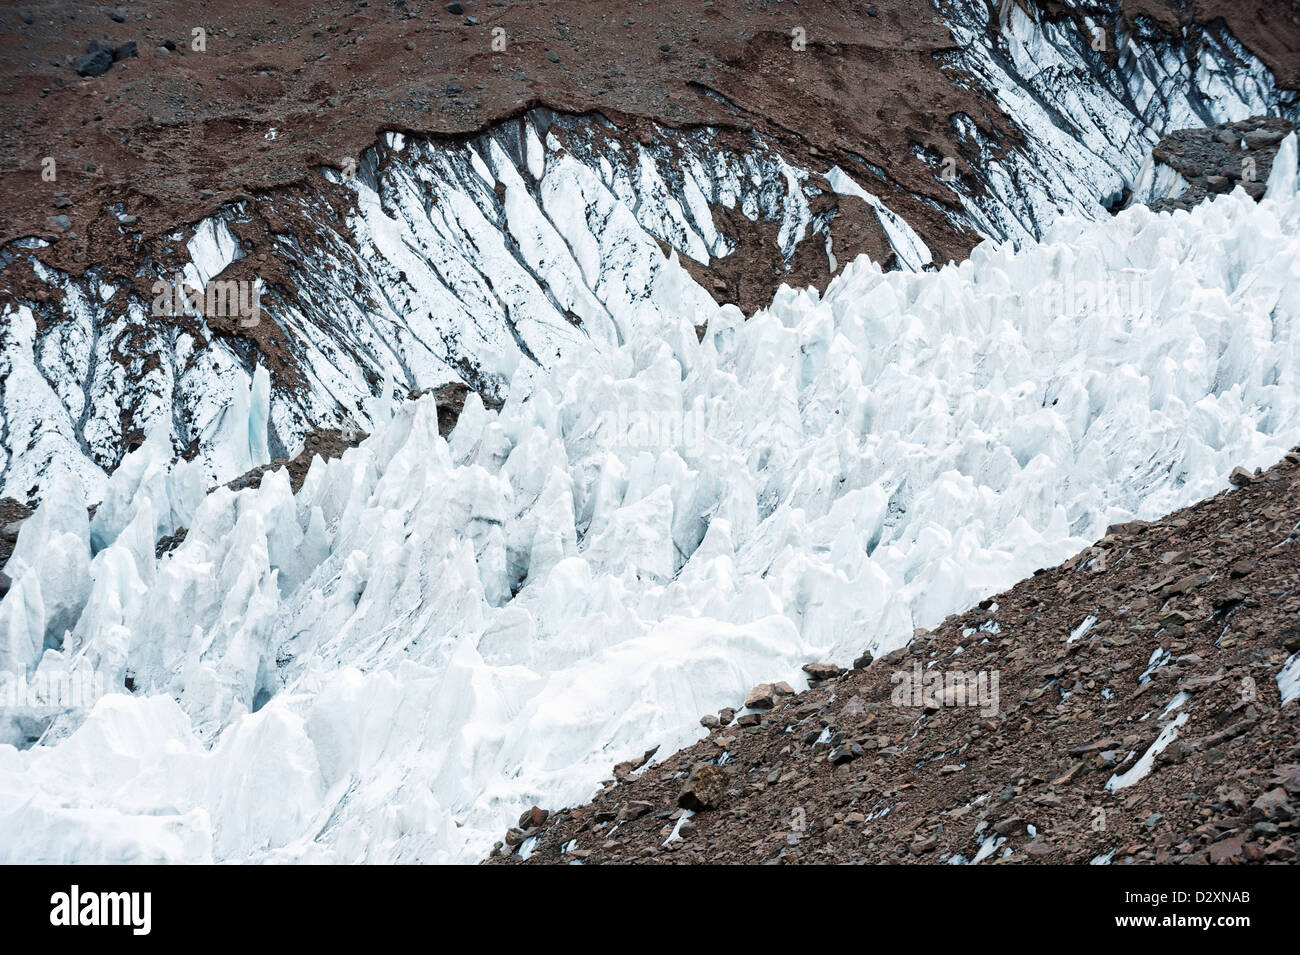 glacier near Plaza de Mulas basecamp, Aconcagua Provincial Park, the Andes mountains, Argentina, South America - Stock Image